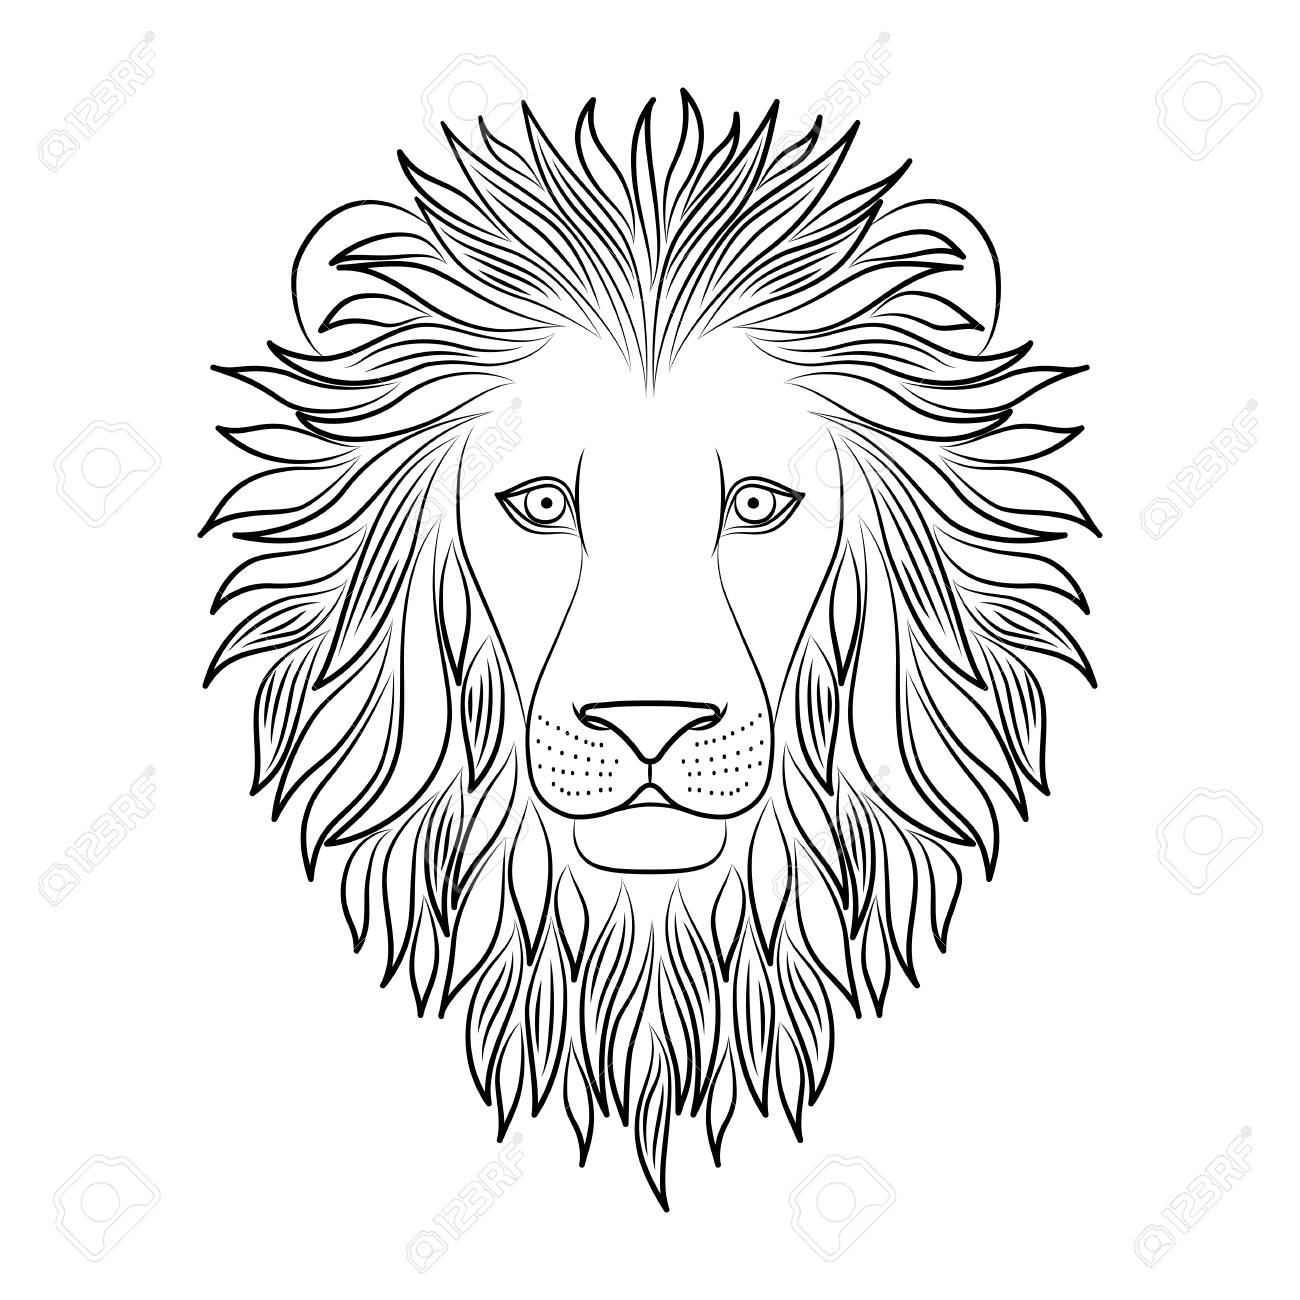 Lion Outline Black And White – Roof sign silhouette stencil symbol tail tiger uspto washing whiskers wildlife yellow black and white coloring book animal figure snout fictional character grizzly bear whippet canidae felidae terrestrial animal vertebrate dog.